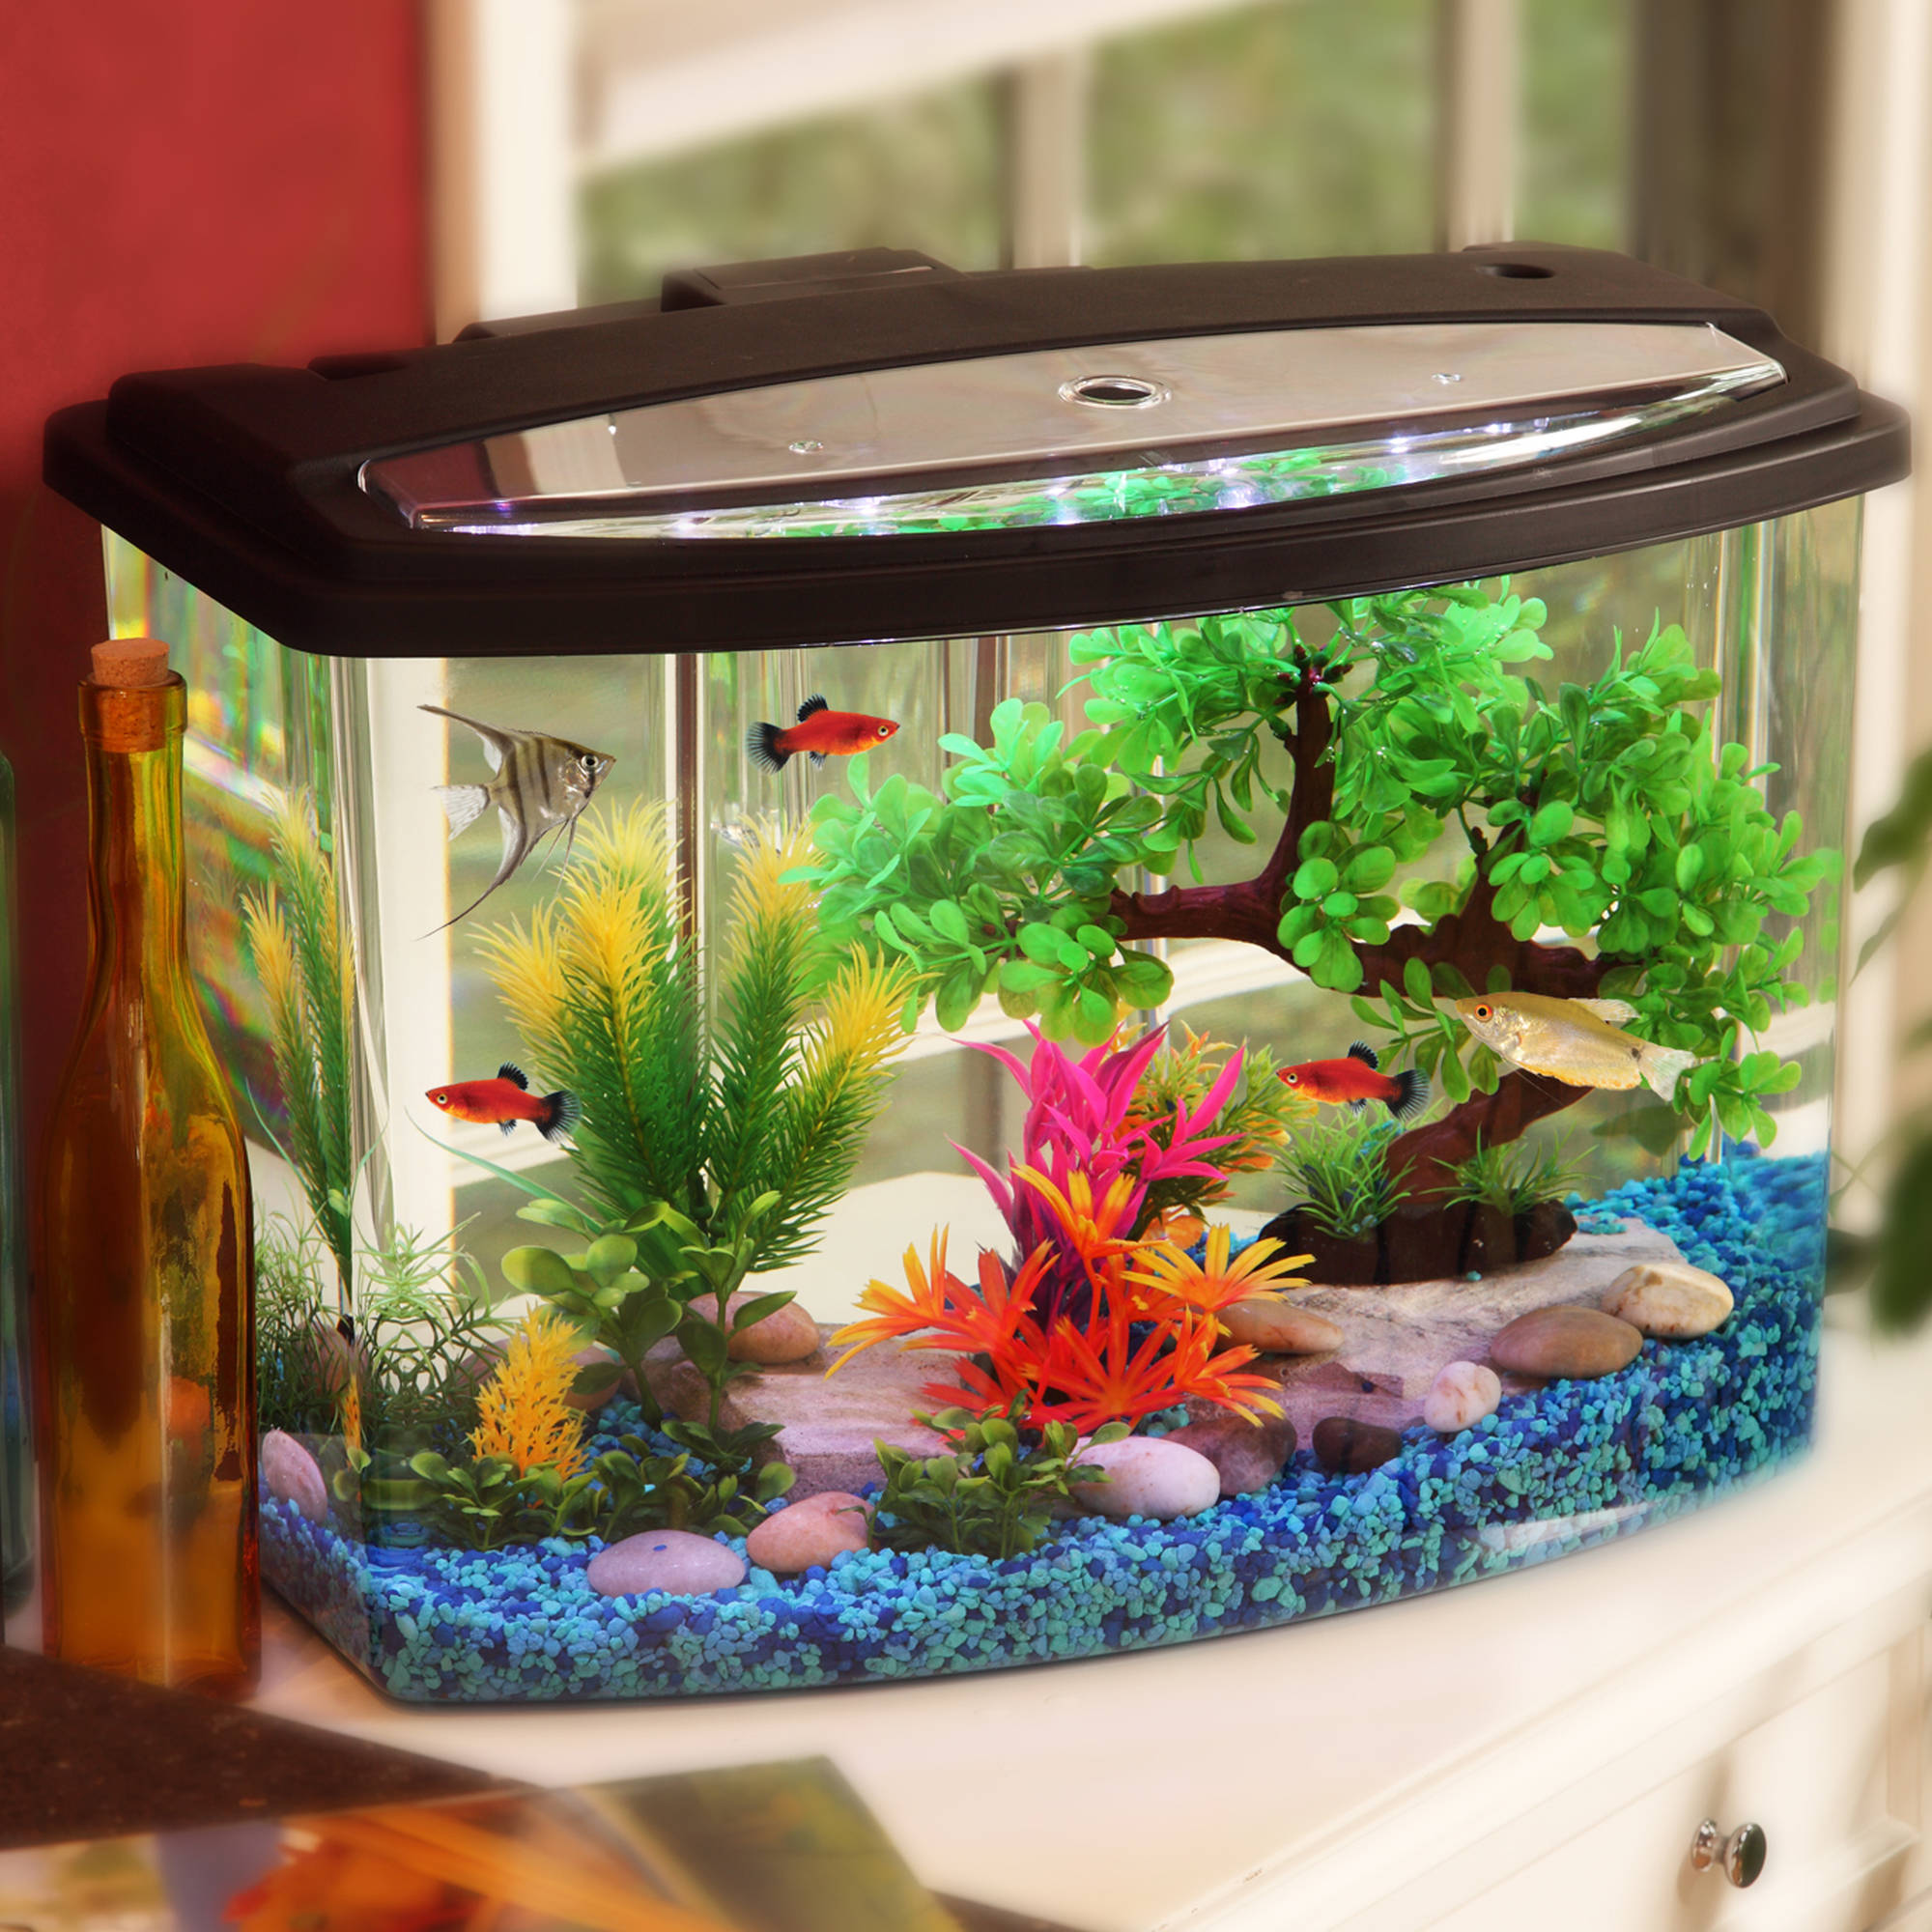 Hawkeye AquaView Aquarium Kit with LED Light and Power Filter 7